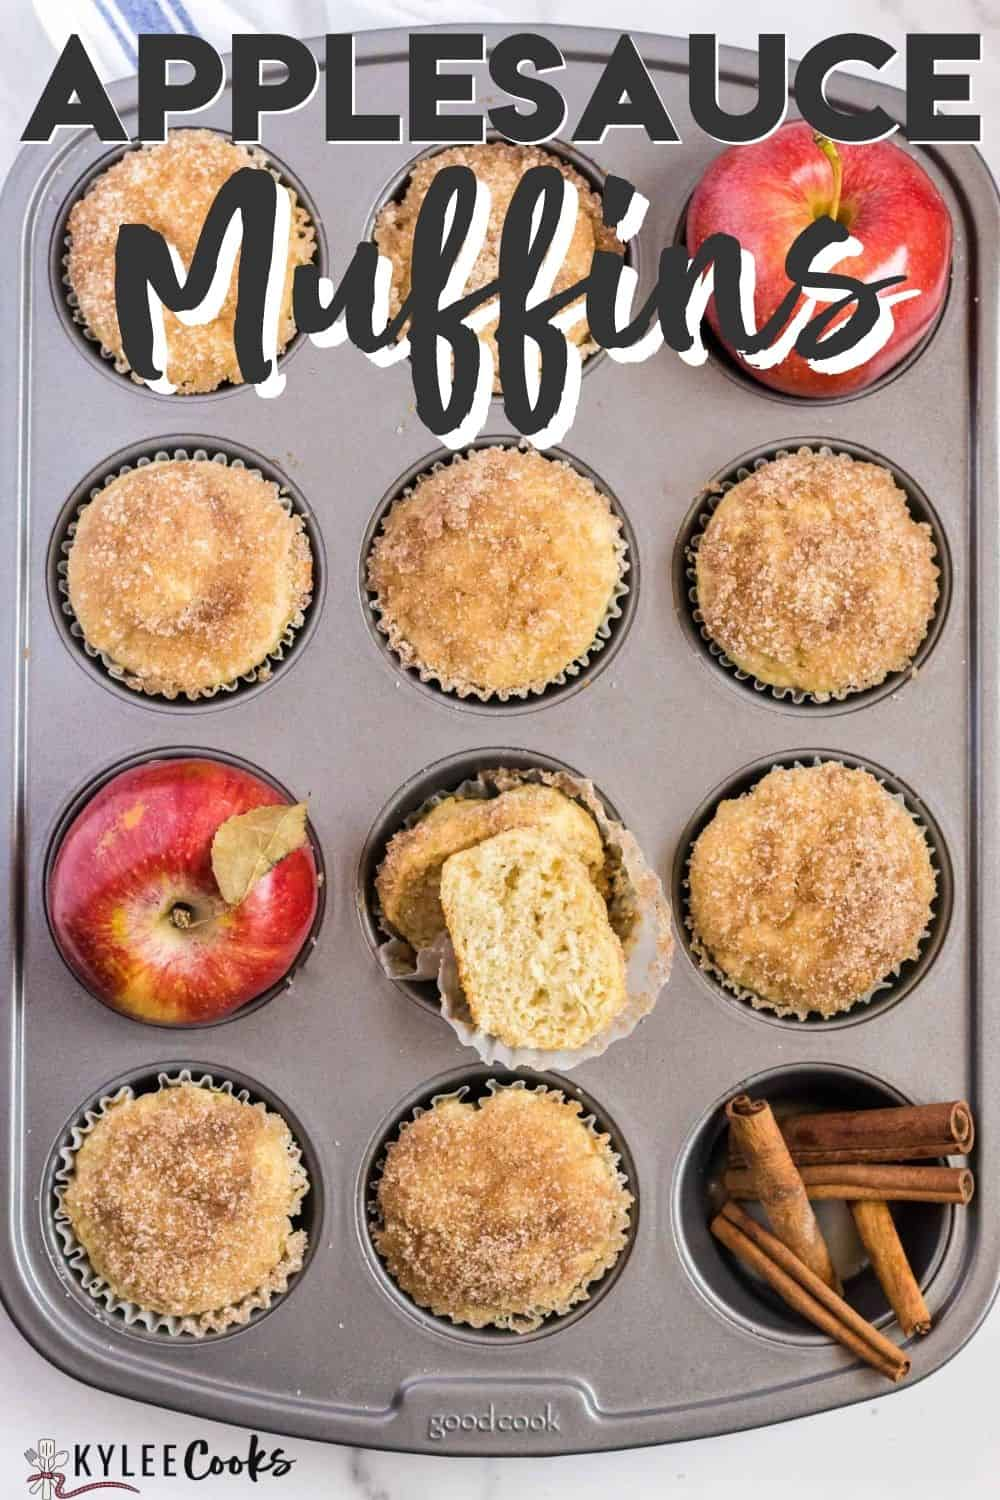 applesauce muffins with recipe text overlaid